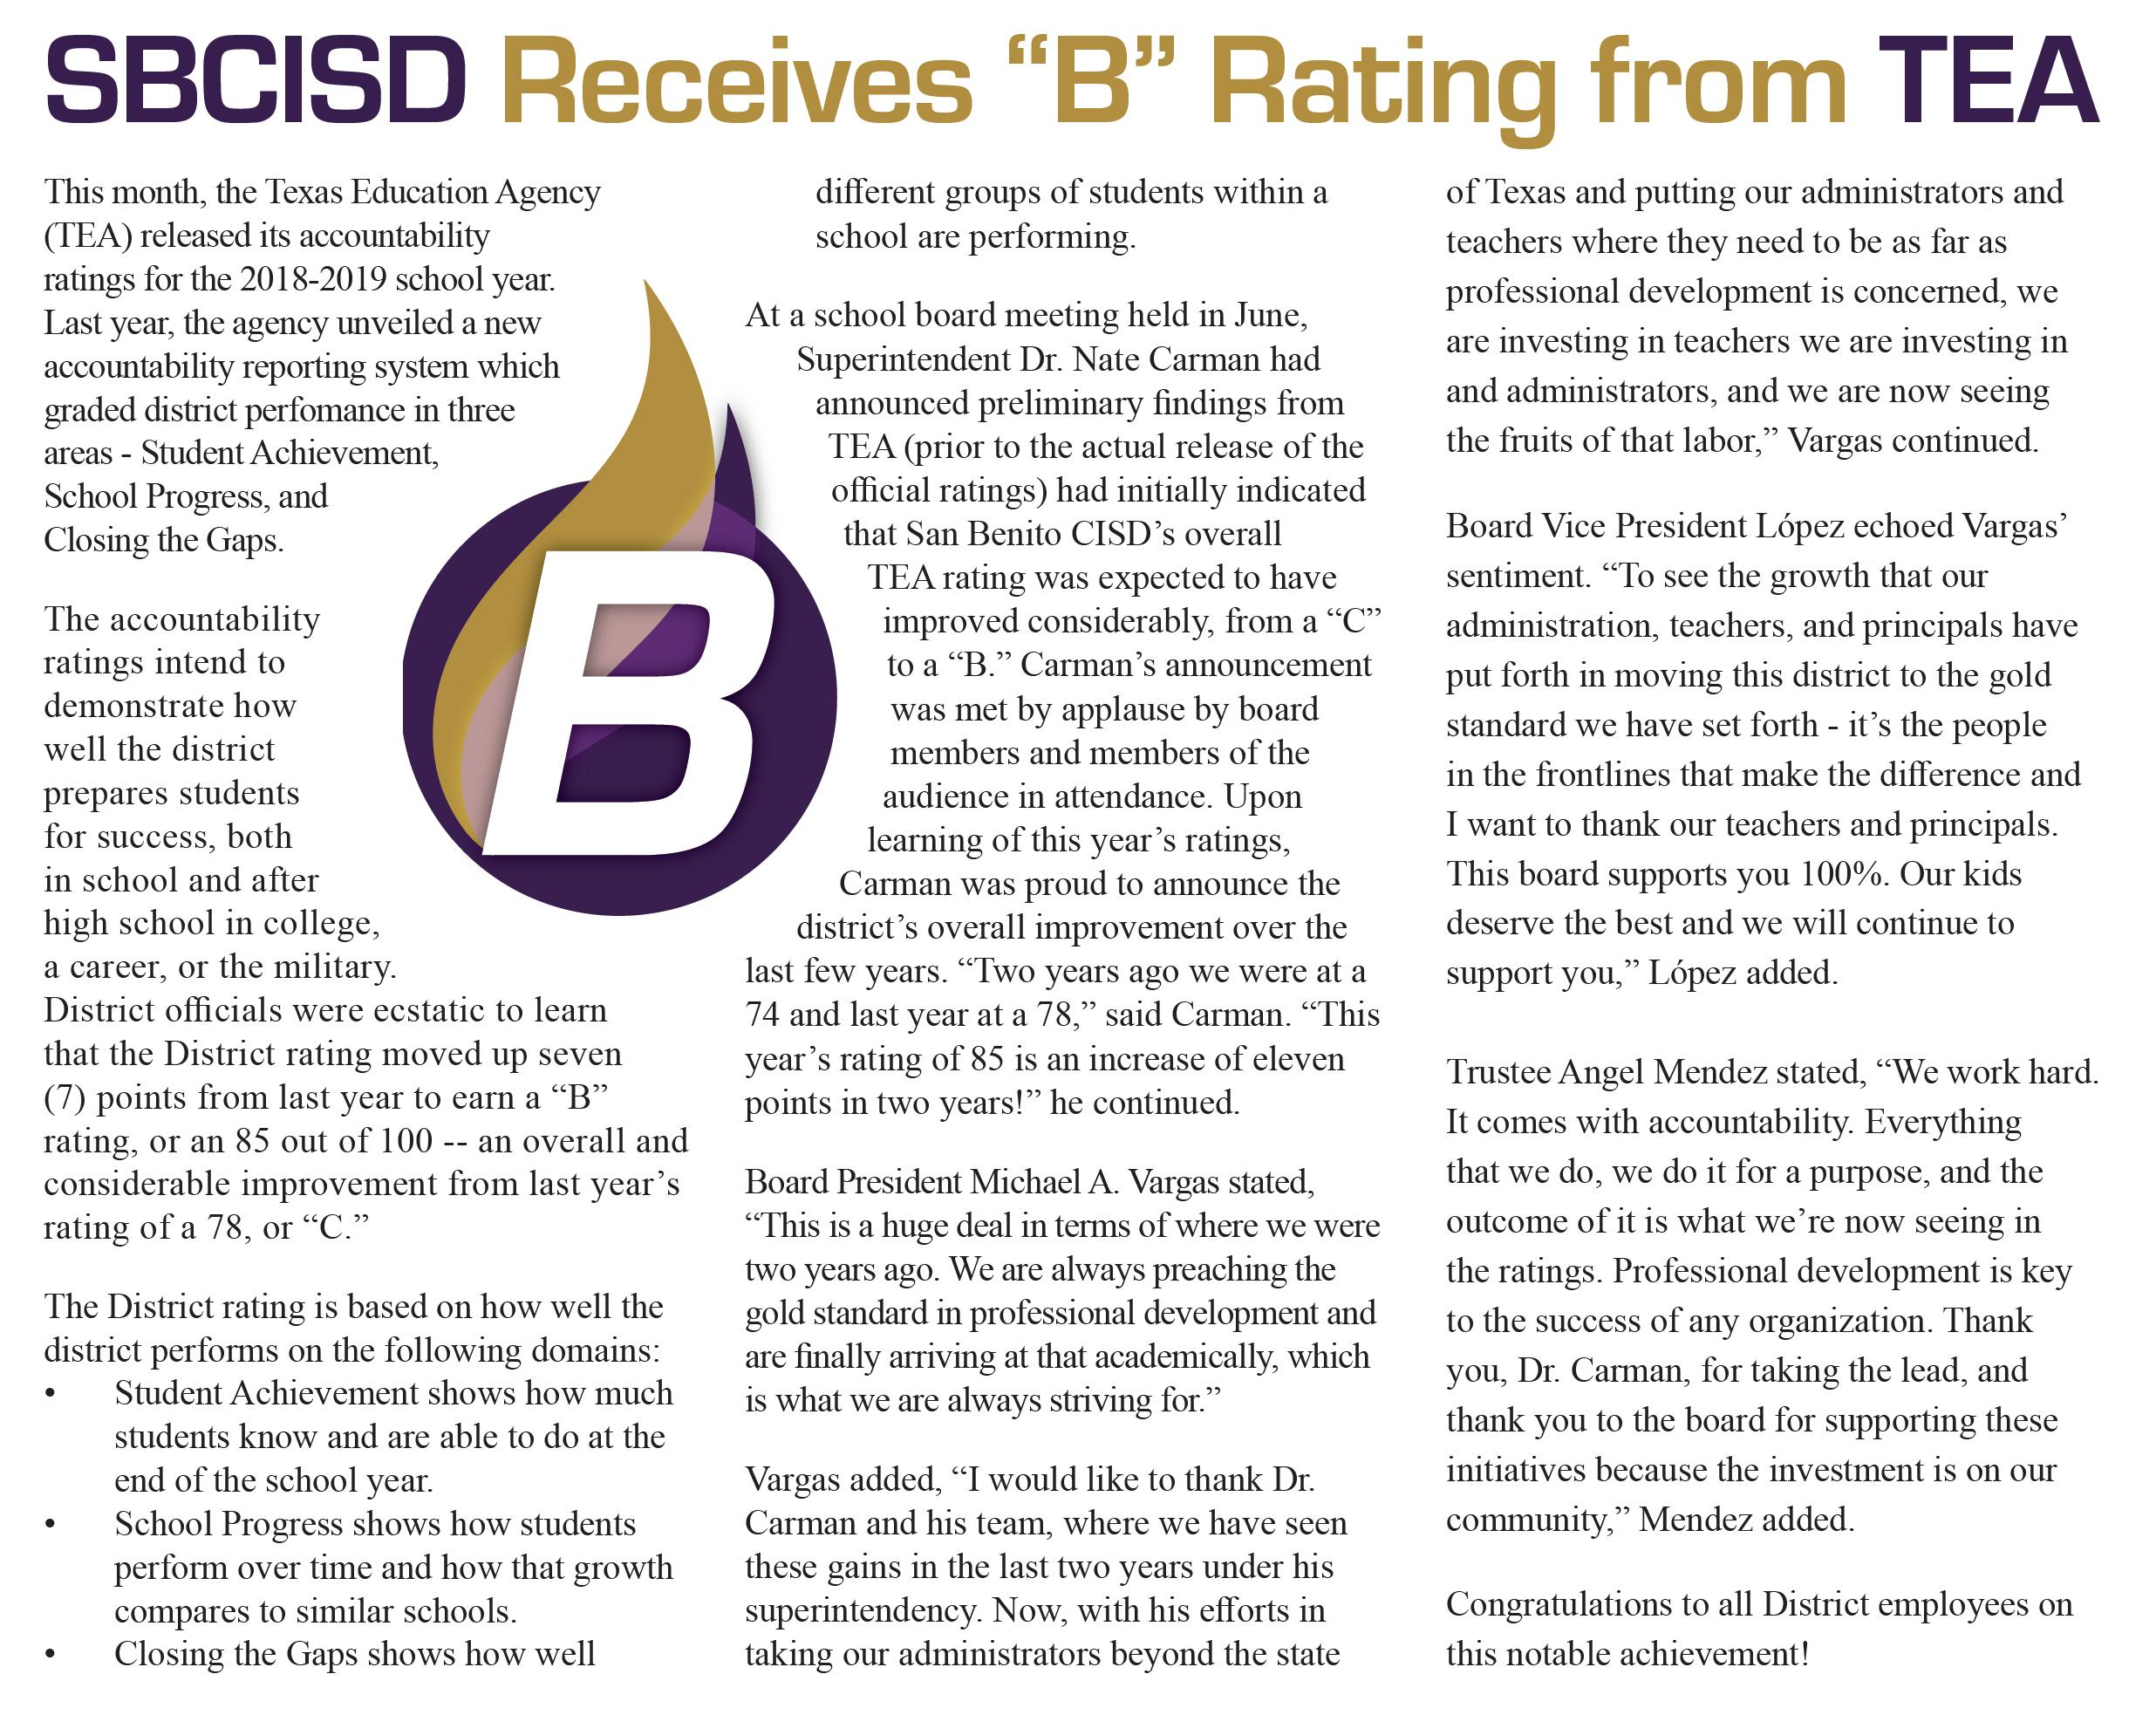 SBCISD Receives B Rating from TEA